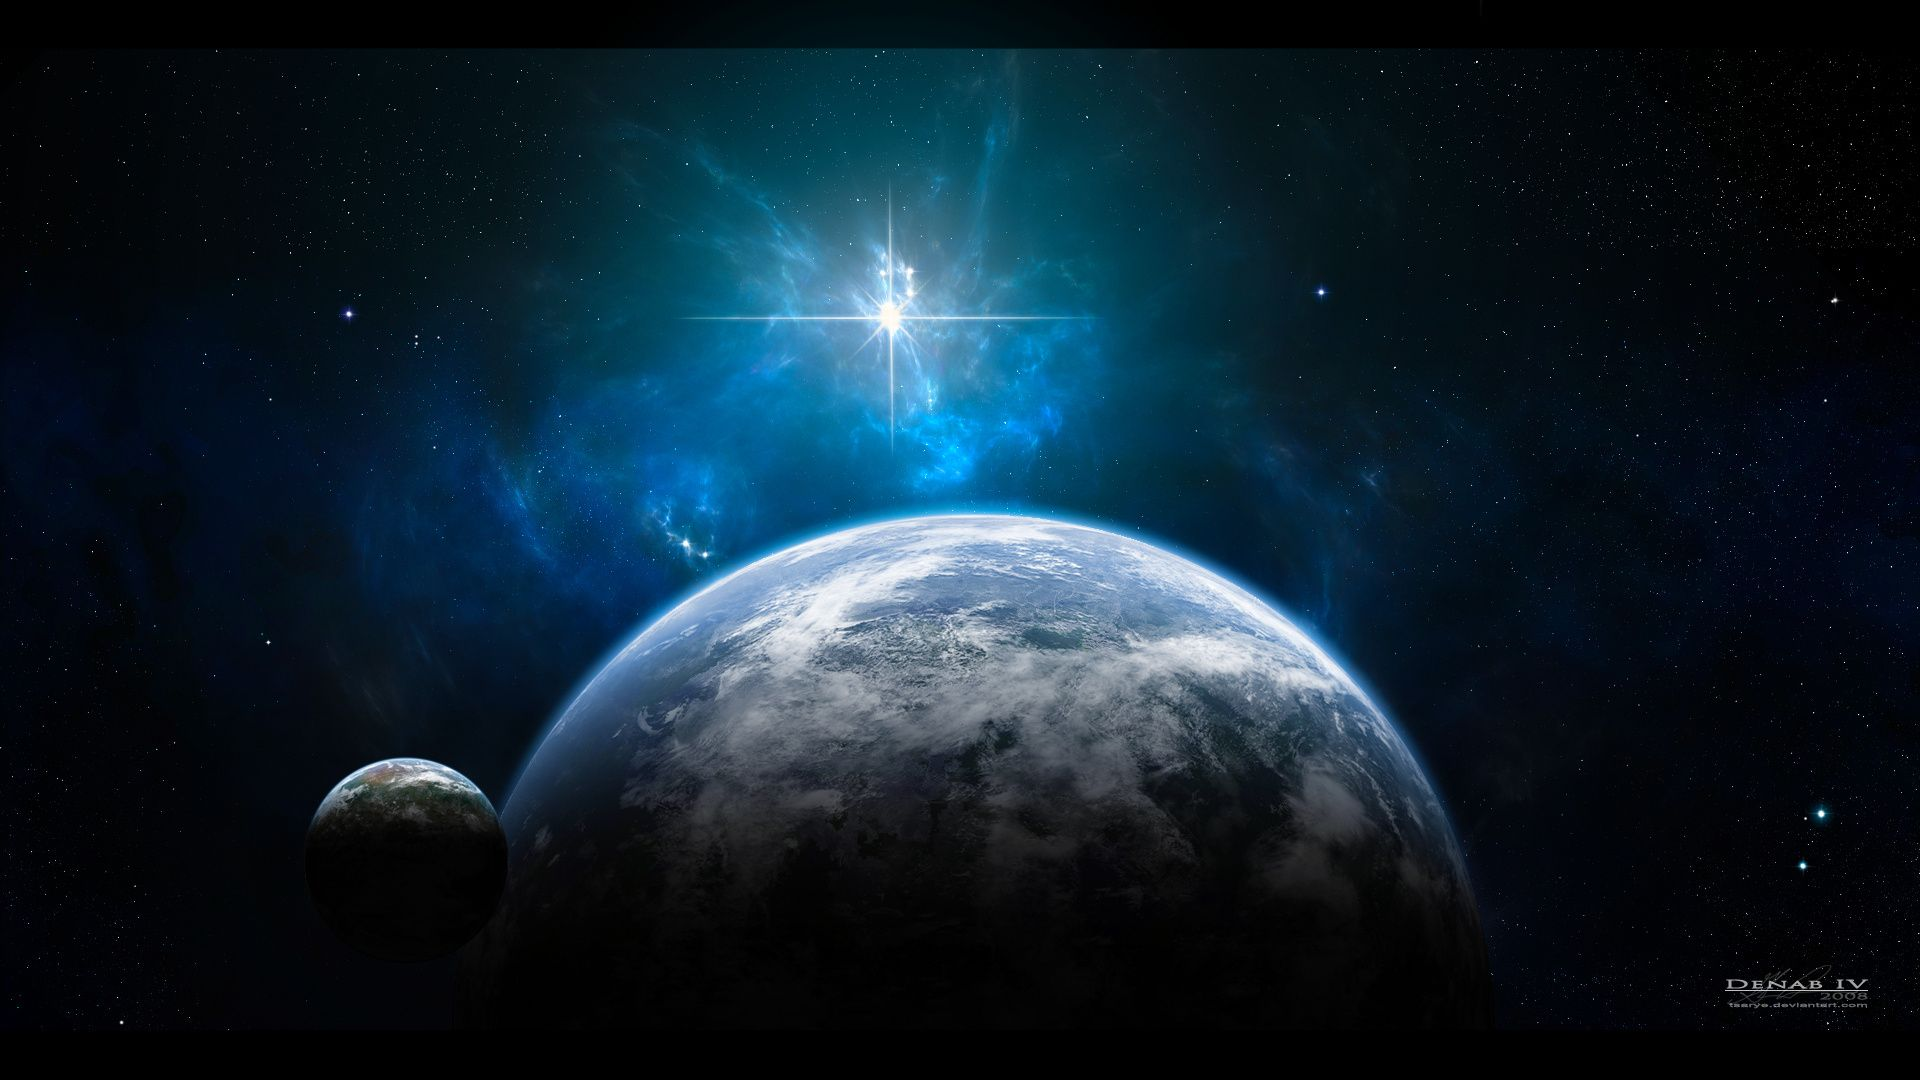 Earth from space wallpaper 1920x1080 wallpapersafari - Earth from space wallpaper ...